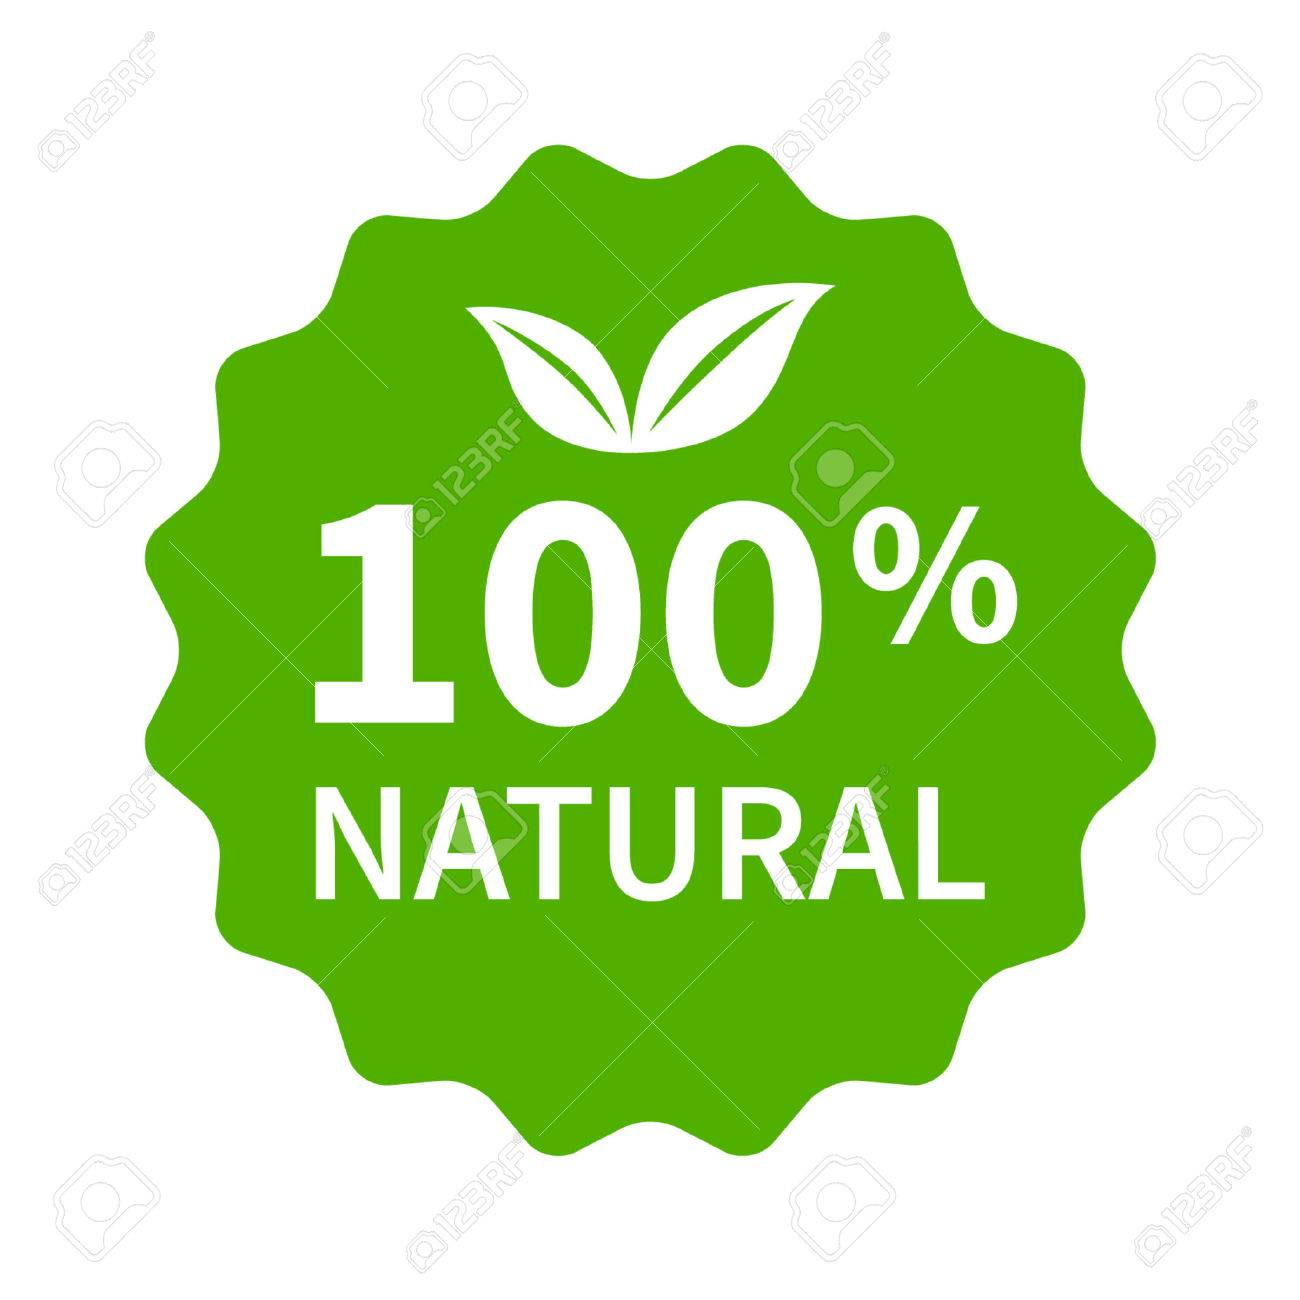 100 all natural stamp label sticker or stick flat icon for products and websites